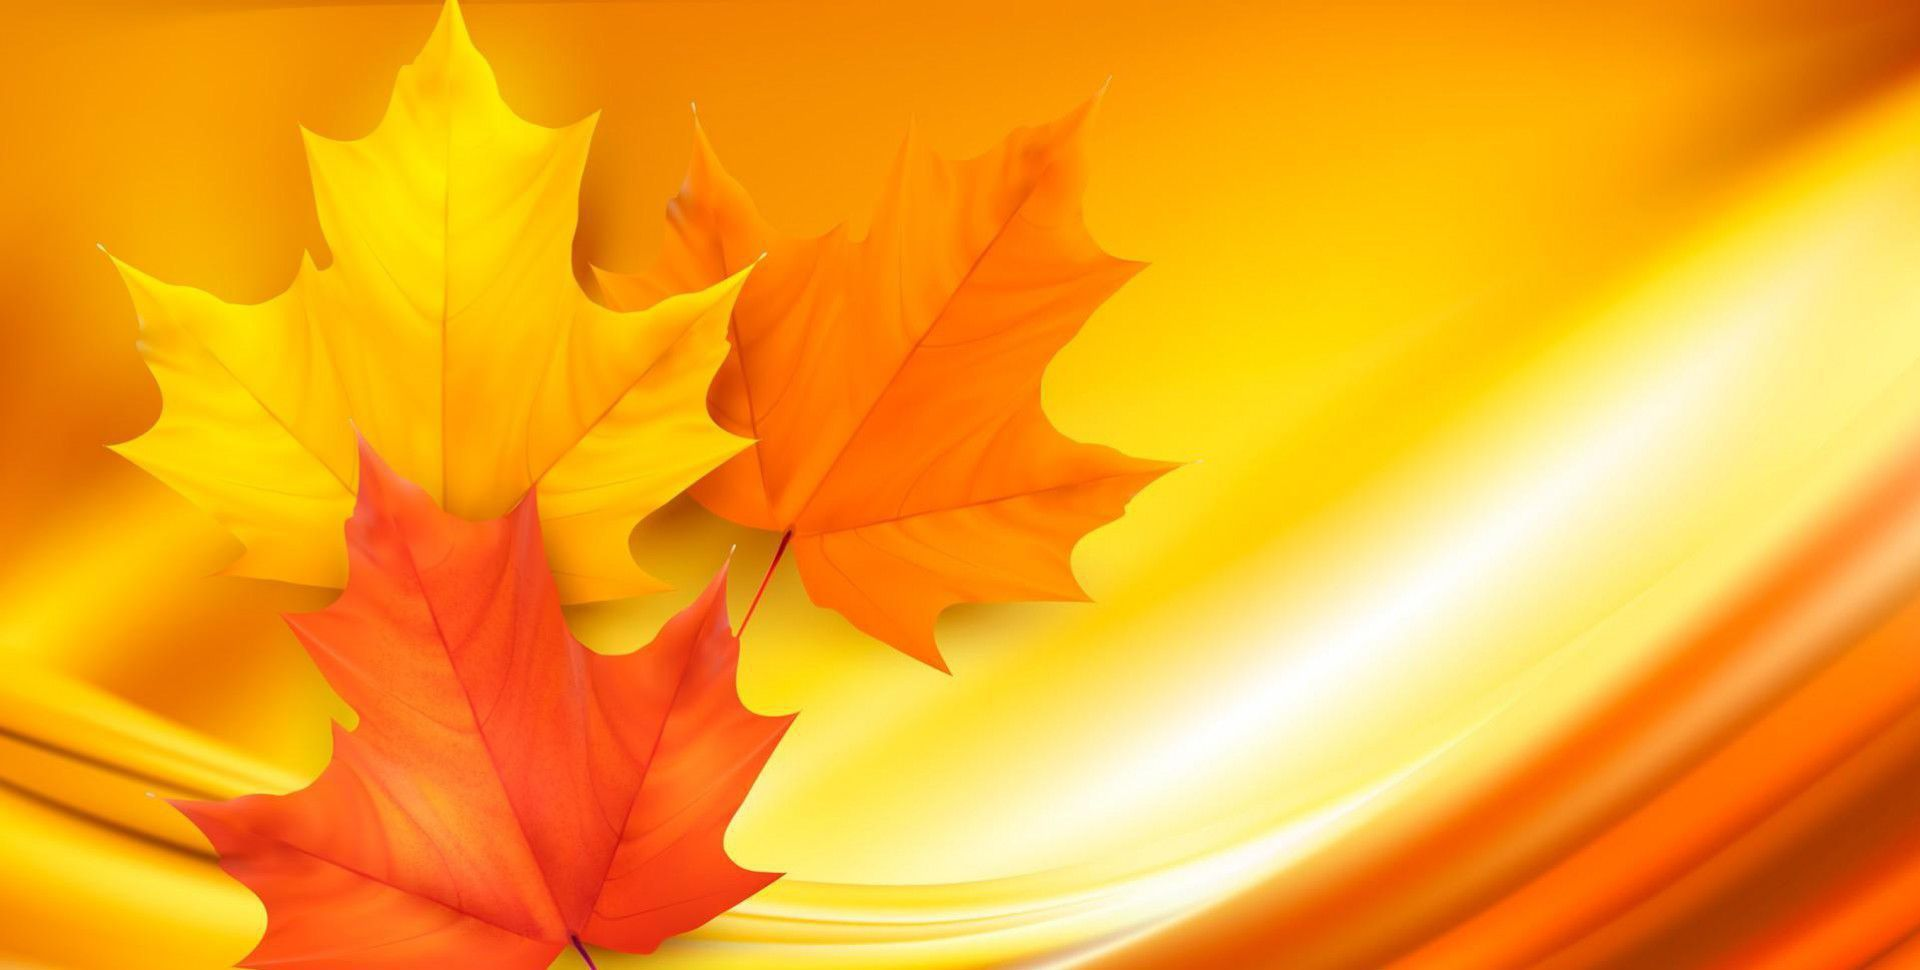 Autumn Leaves Computer Wallpaper